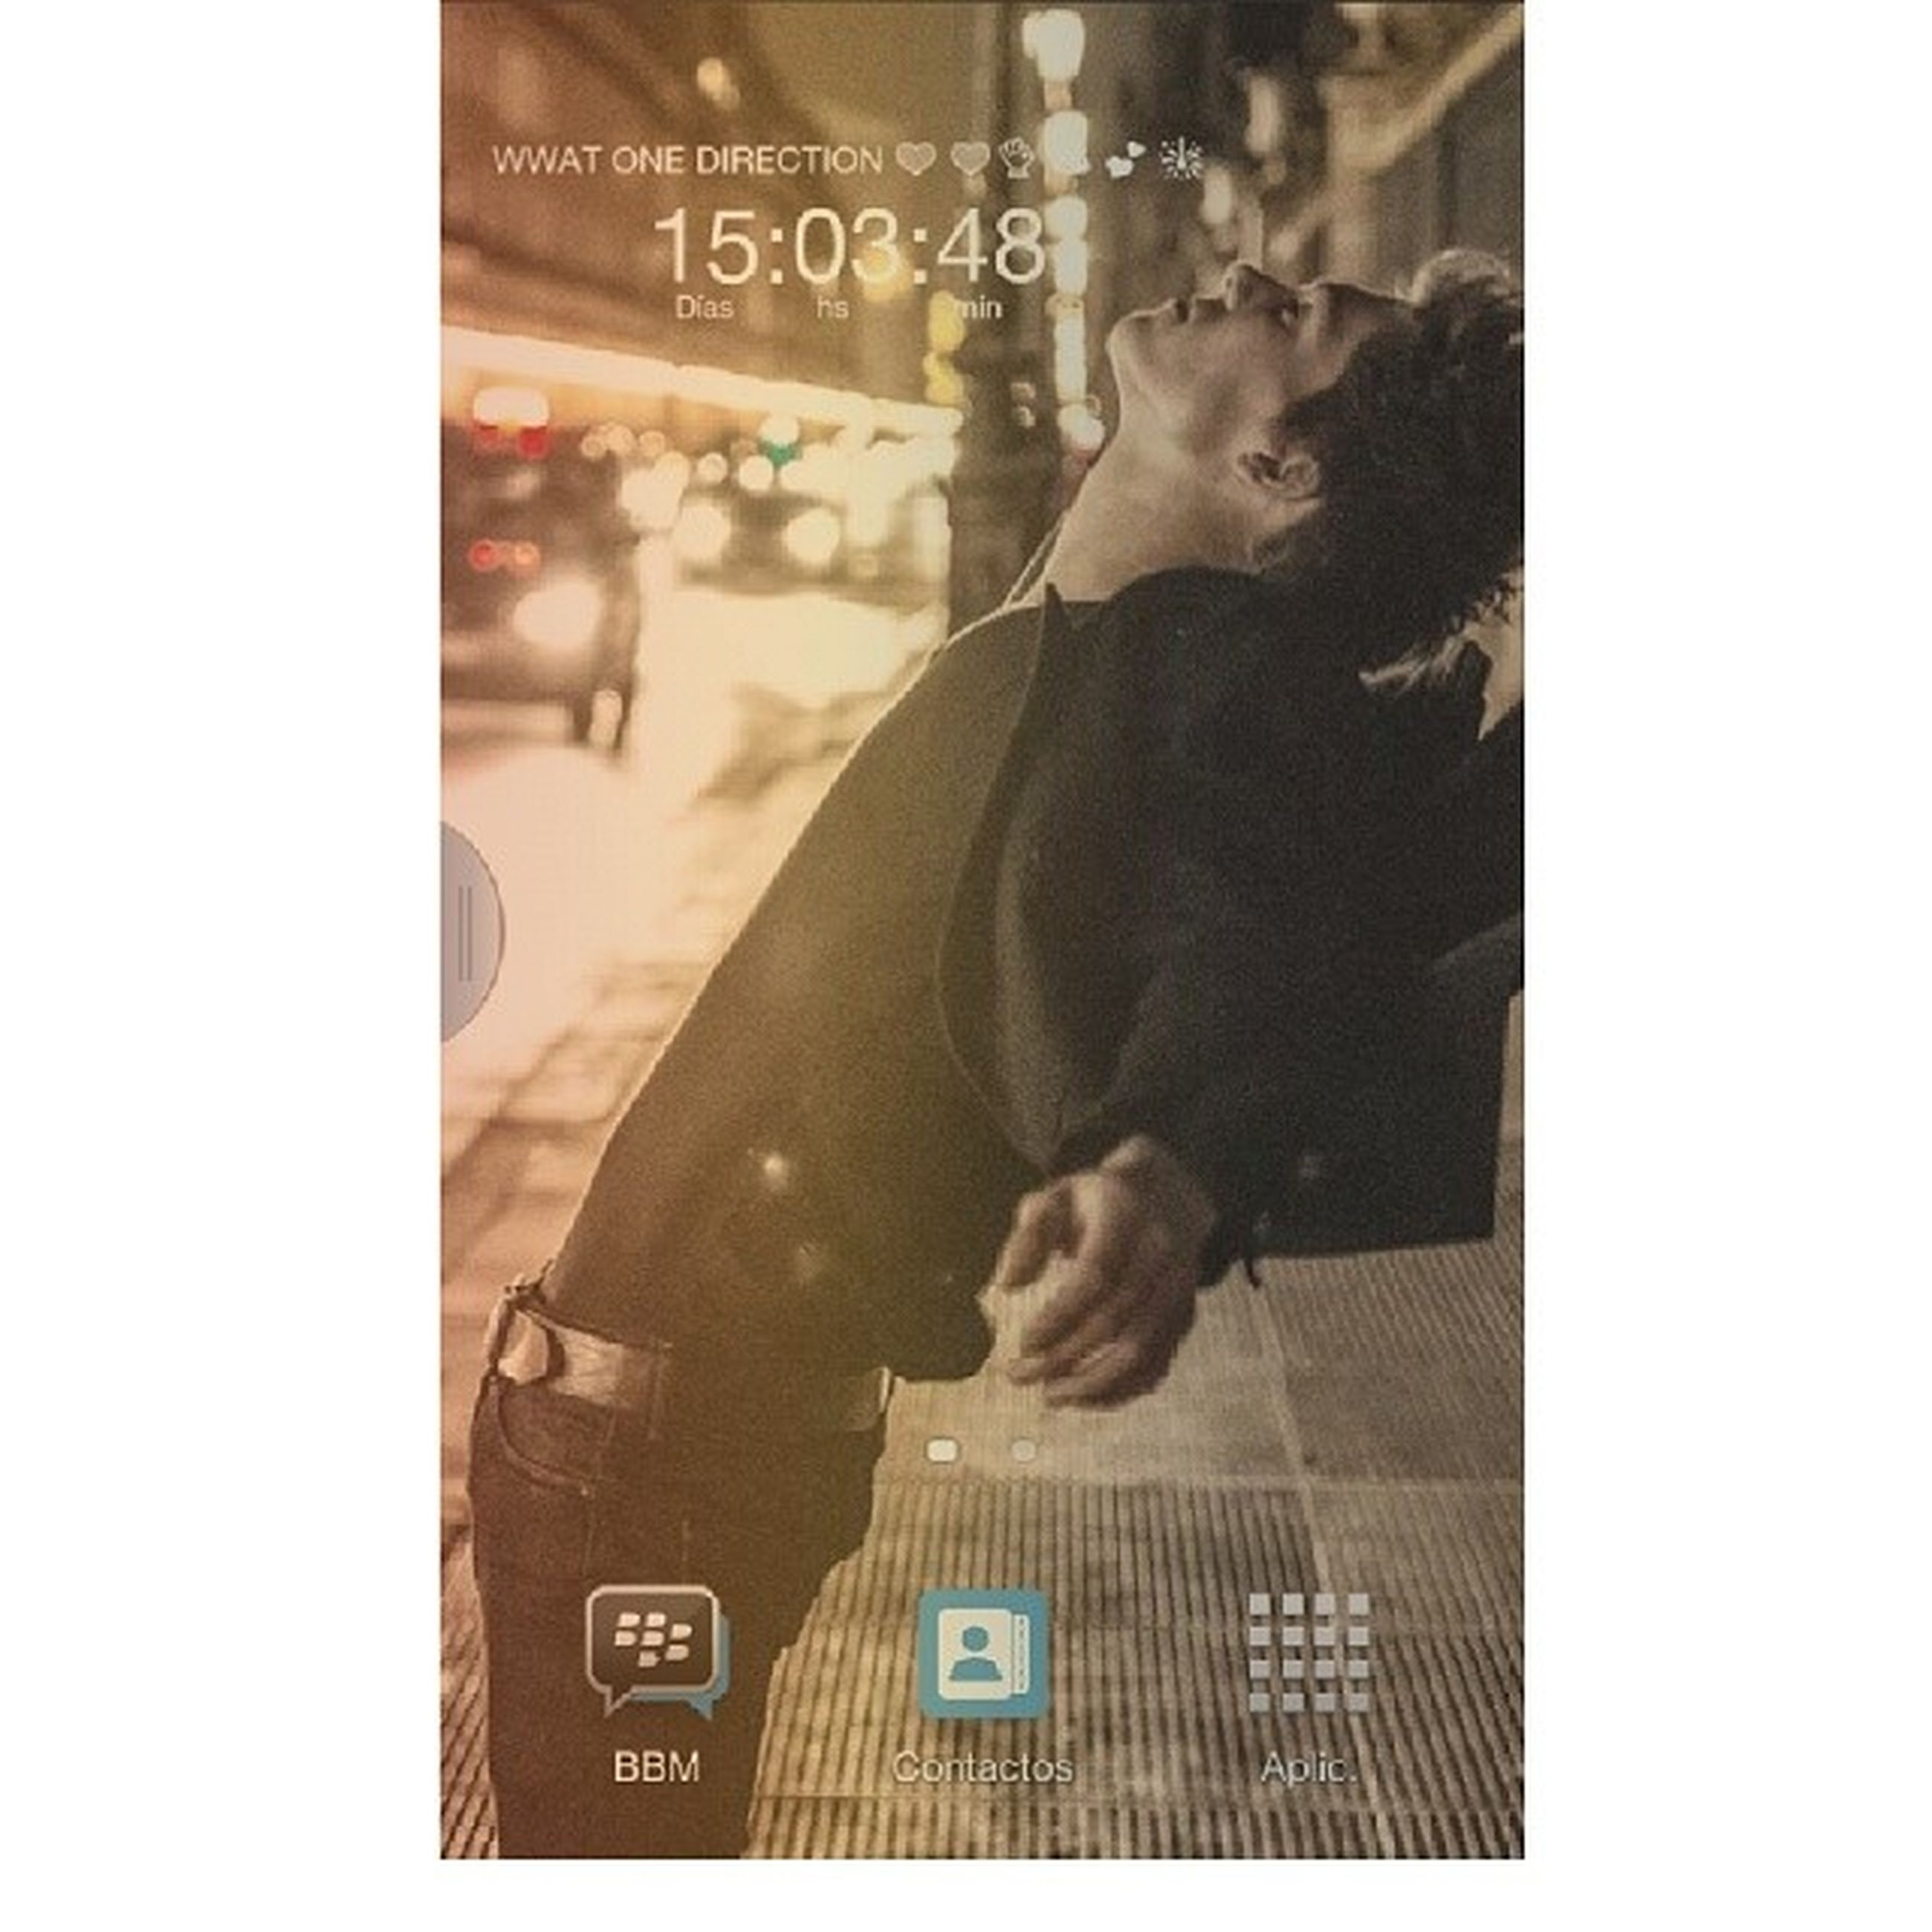 communication, text, indoors, western script, lifestyles, men, technology, leisure activity, transfer print, holding, wireless technology, auto post production filter, non-western script, photography themes, front view, young men, person, casual clothing